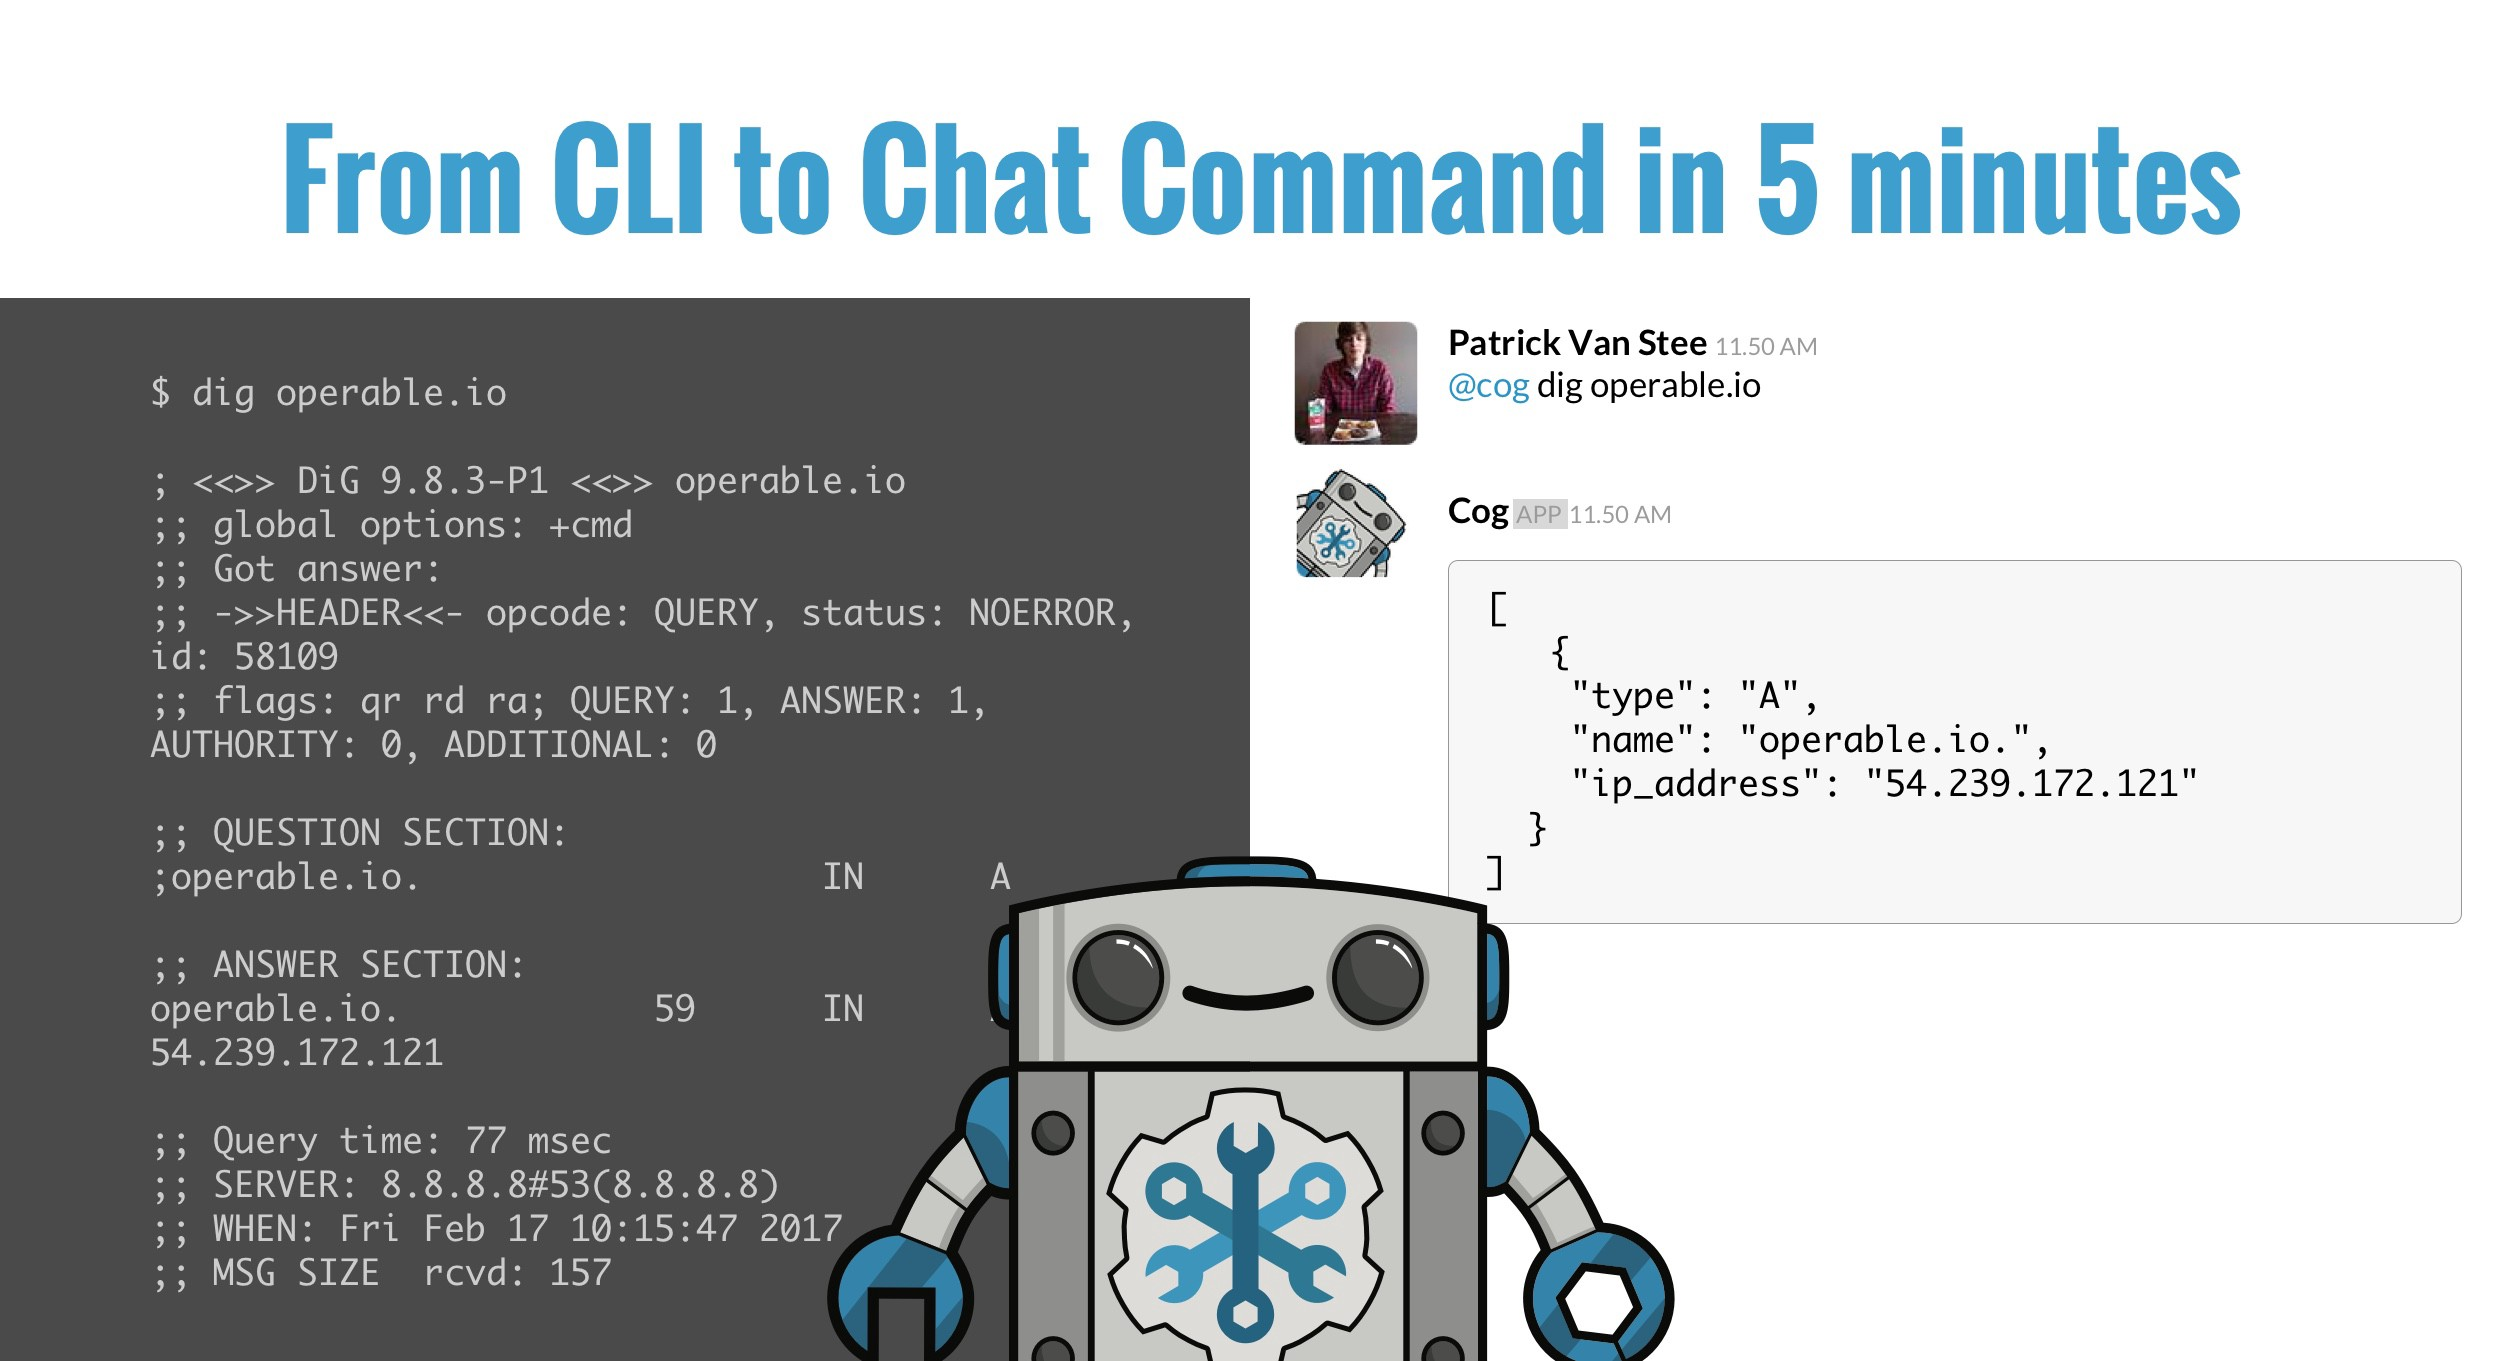 From CLI to Chat command in 5 minutes - Operable News